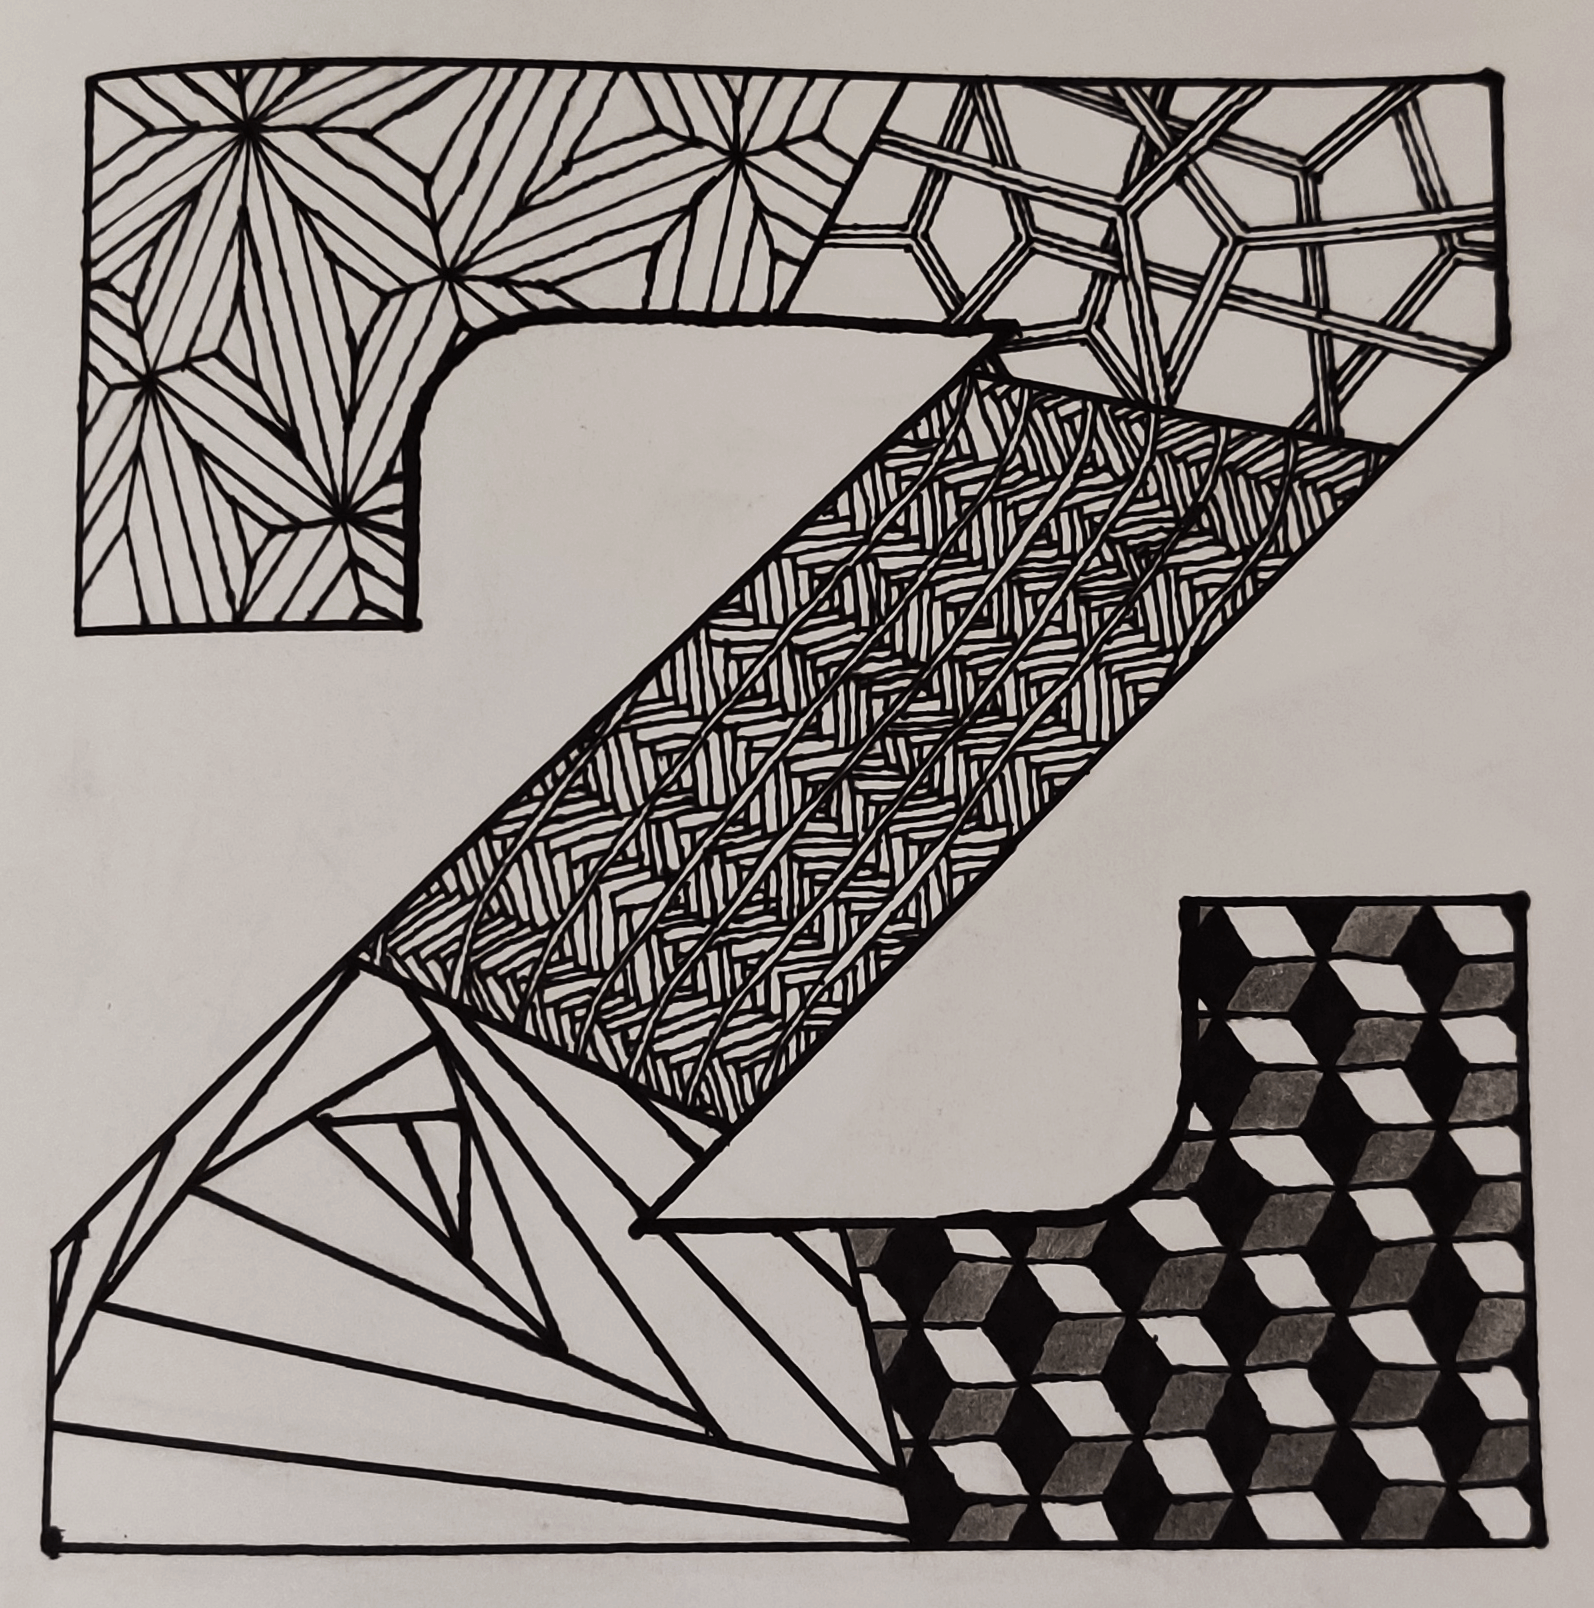 A block-text drawing of the letter 'Z' filled in with Zentangle patterns.